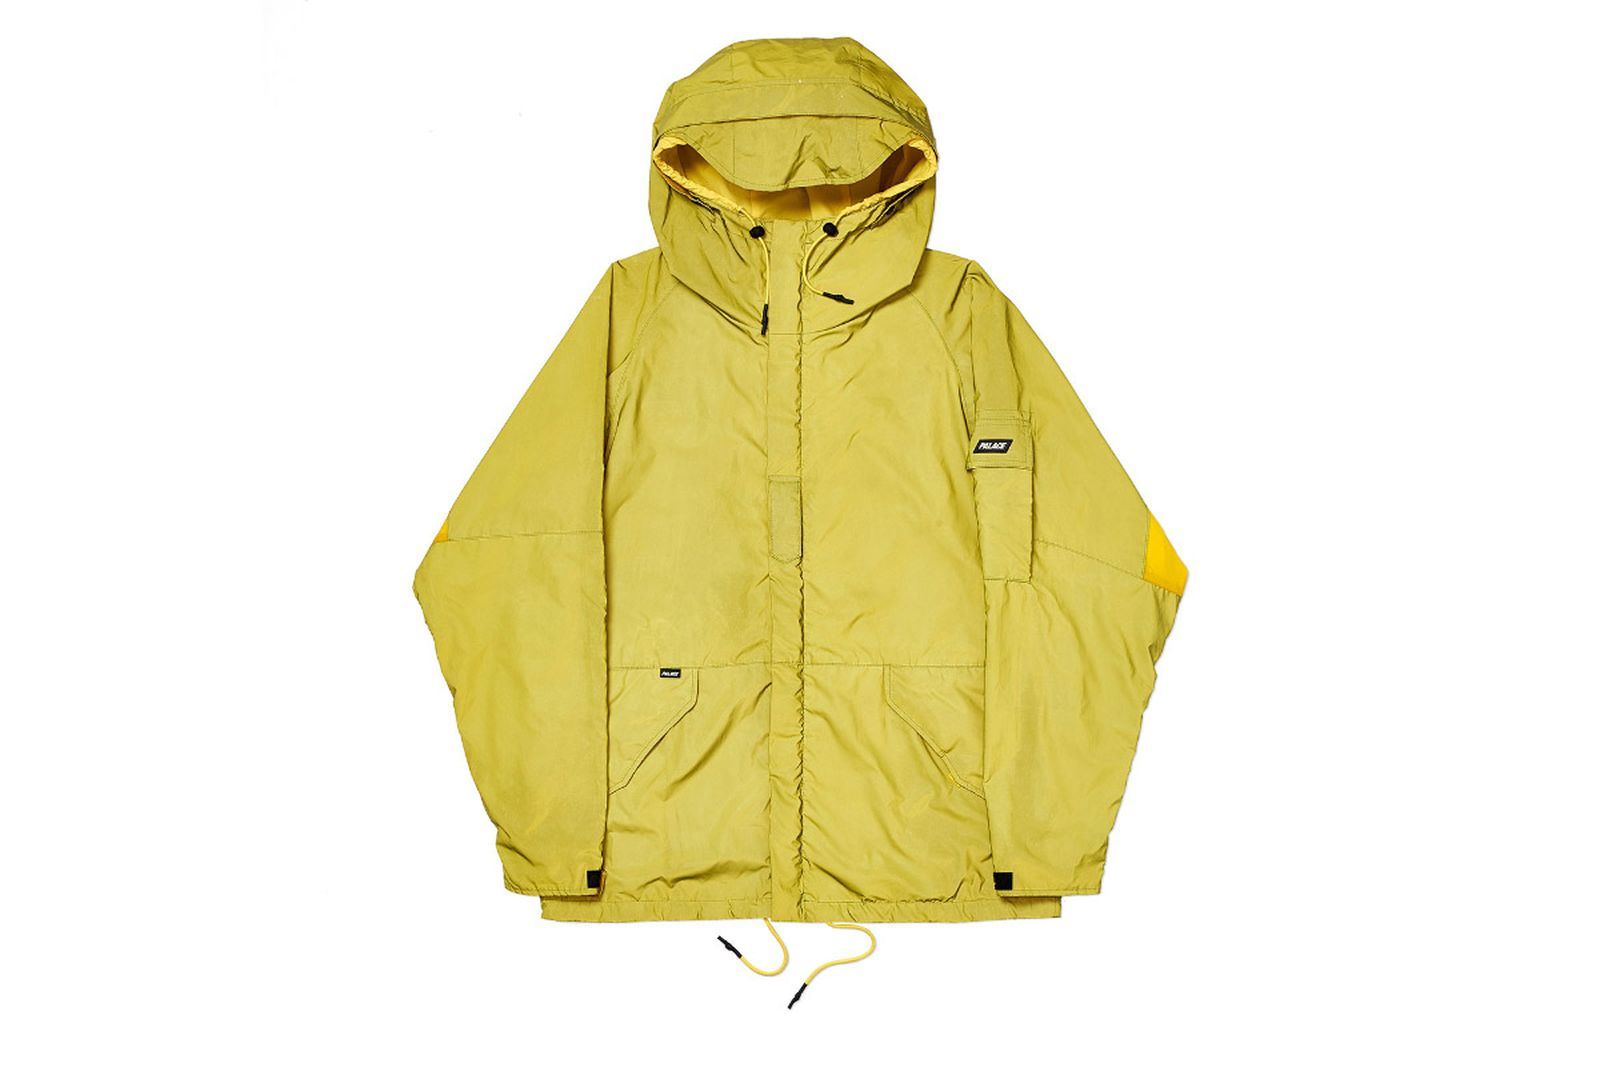 Palace 2019 Autumn Jacket Deflector yellow reflective front fw19